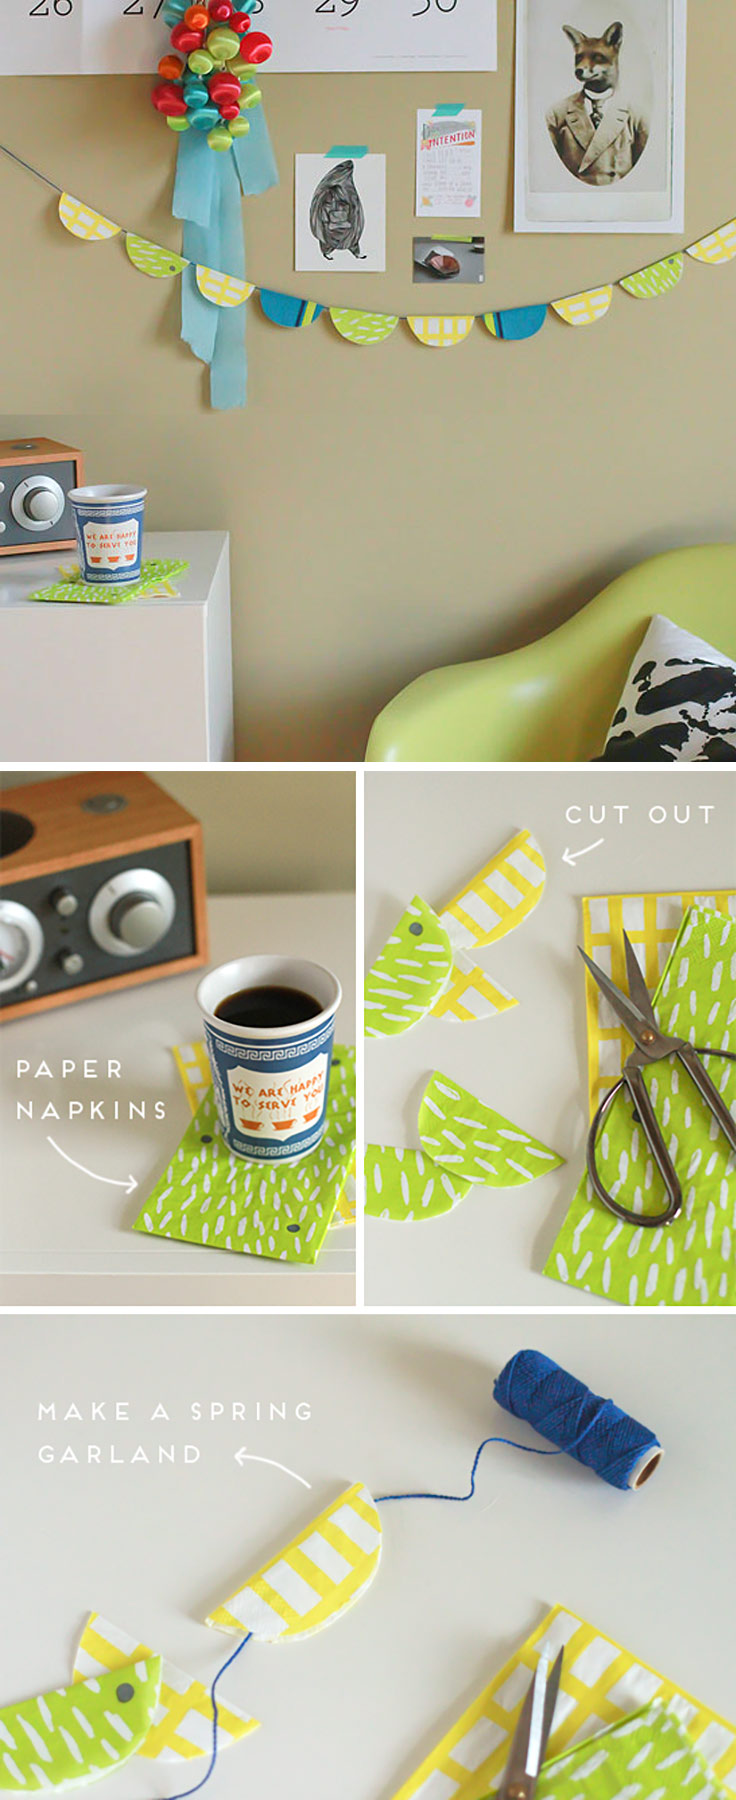 Superb Cute DIY Room Decor Ideas For Teens   DIY Bedroom Projects For Teenagers    Paper Napkin